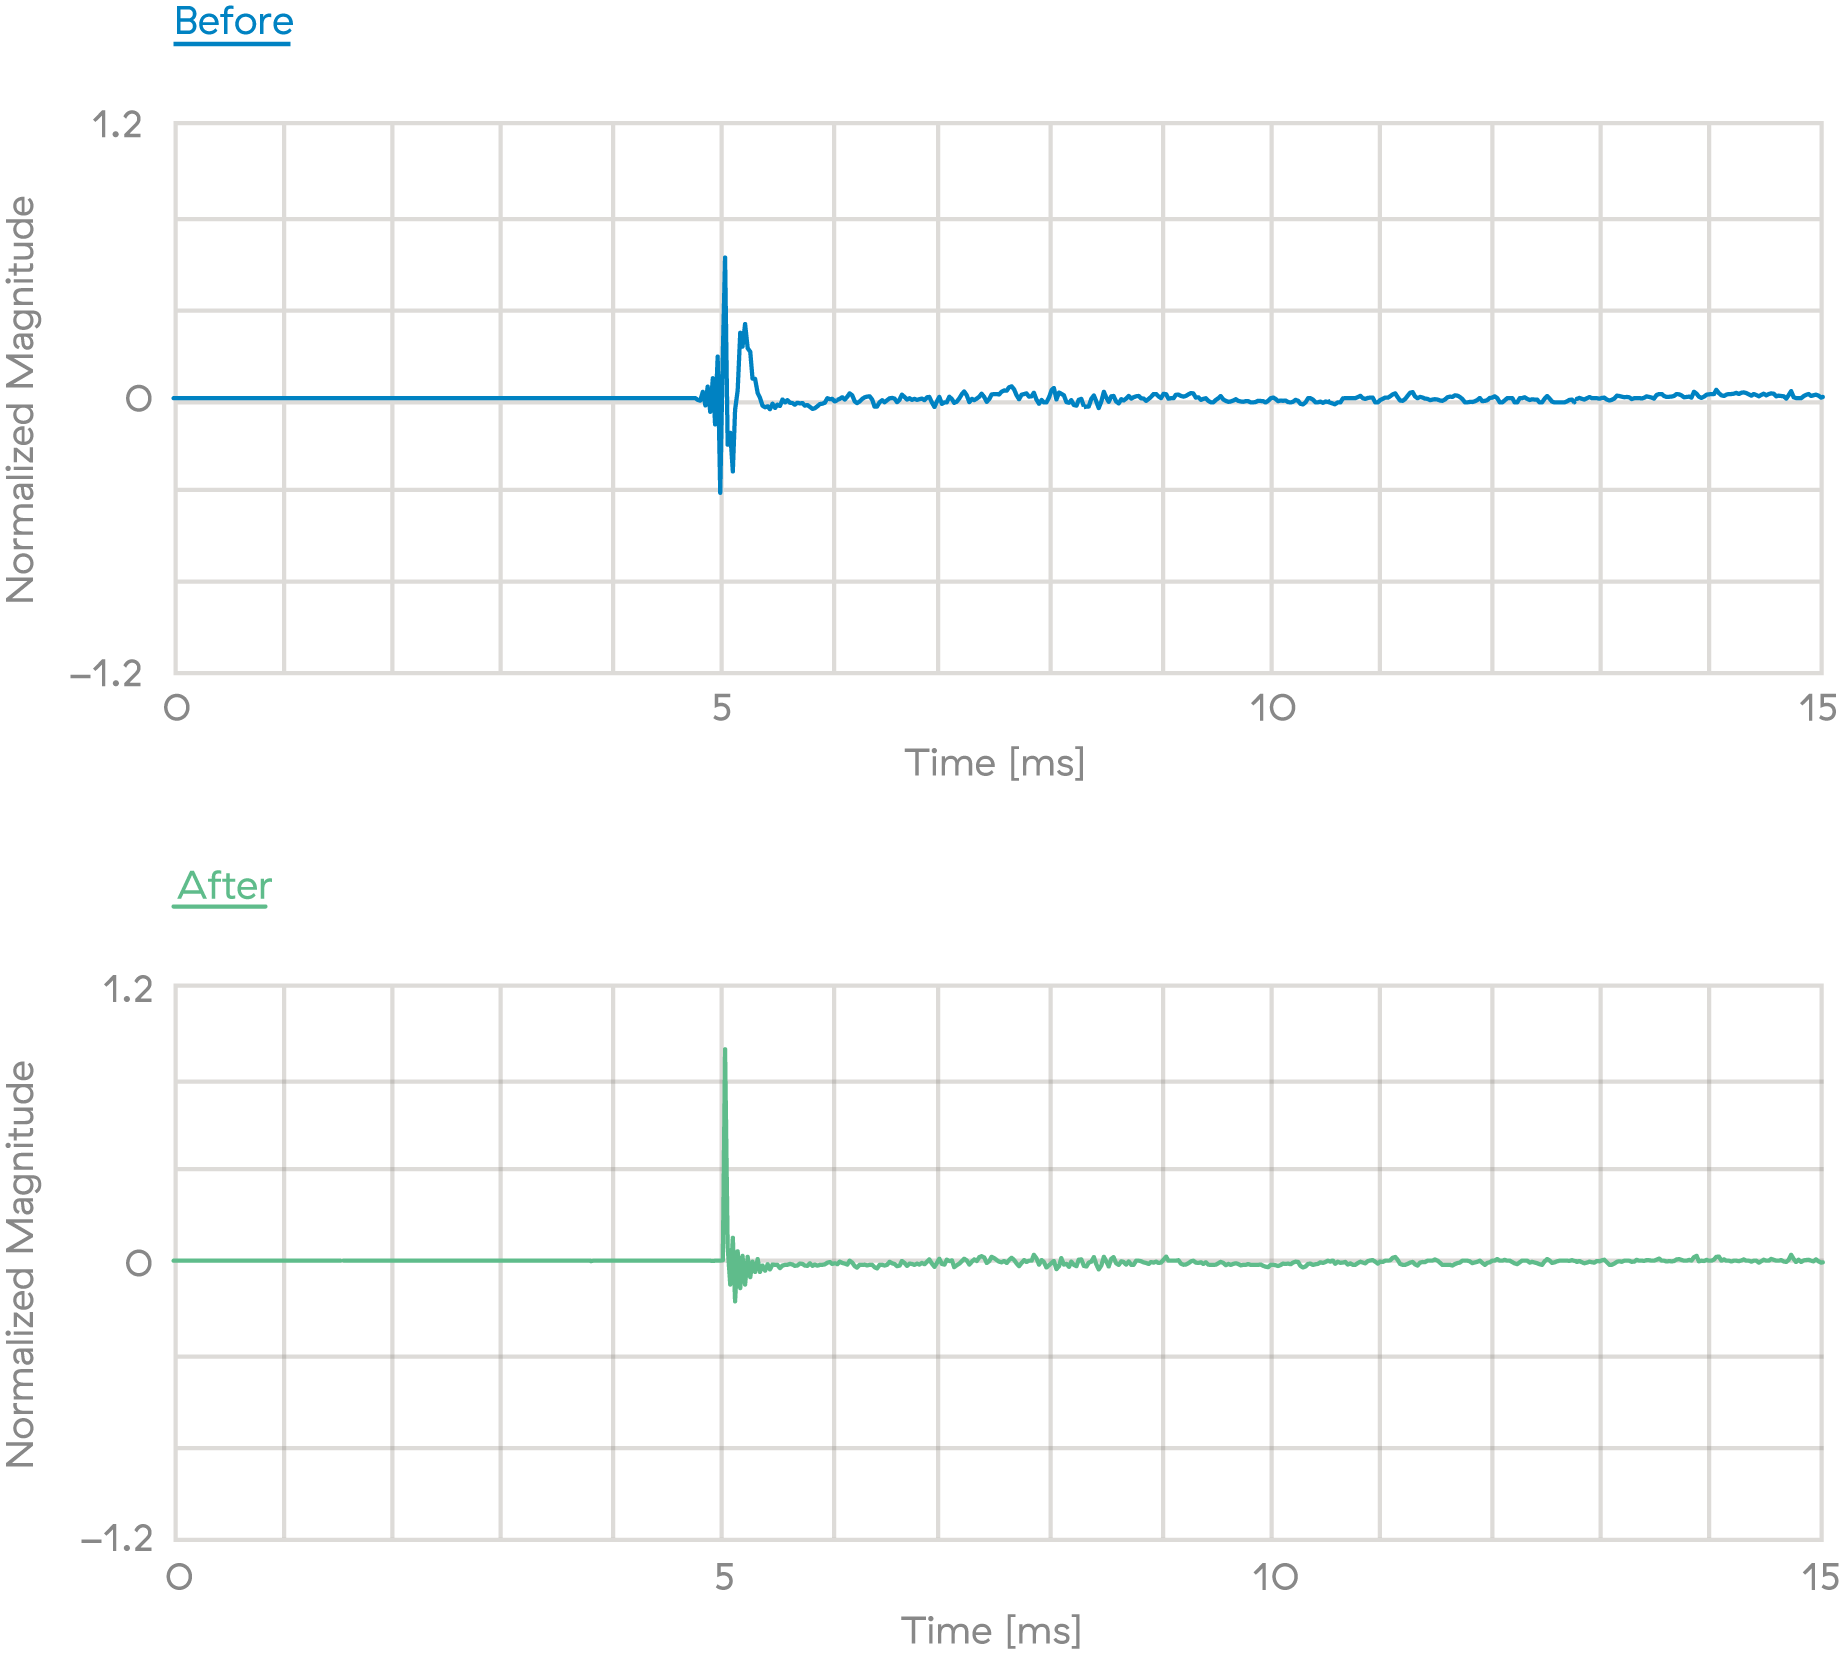 The transient response of a loudspeaker can be understood by examining what happens to a perfect spike-like signal, or impulse, of very short duration when it is played back through the system. The resulting sound pressure signal that reaches the listener's position is called the impulse response.    The upper graph  shows the impulse response of a typical two-way HiFi loudspeaker. The impulse has been smeared out in time by the loudspeaker.  The lower graph  shows the impulse response after Dirac Live room correction has been applied. Clearly, the previously smeared-out sound wave has been restored to a more spike-like one, bearing a much better resemblance to the original impulse.